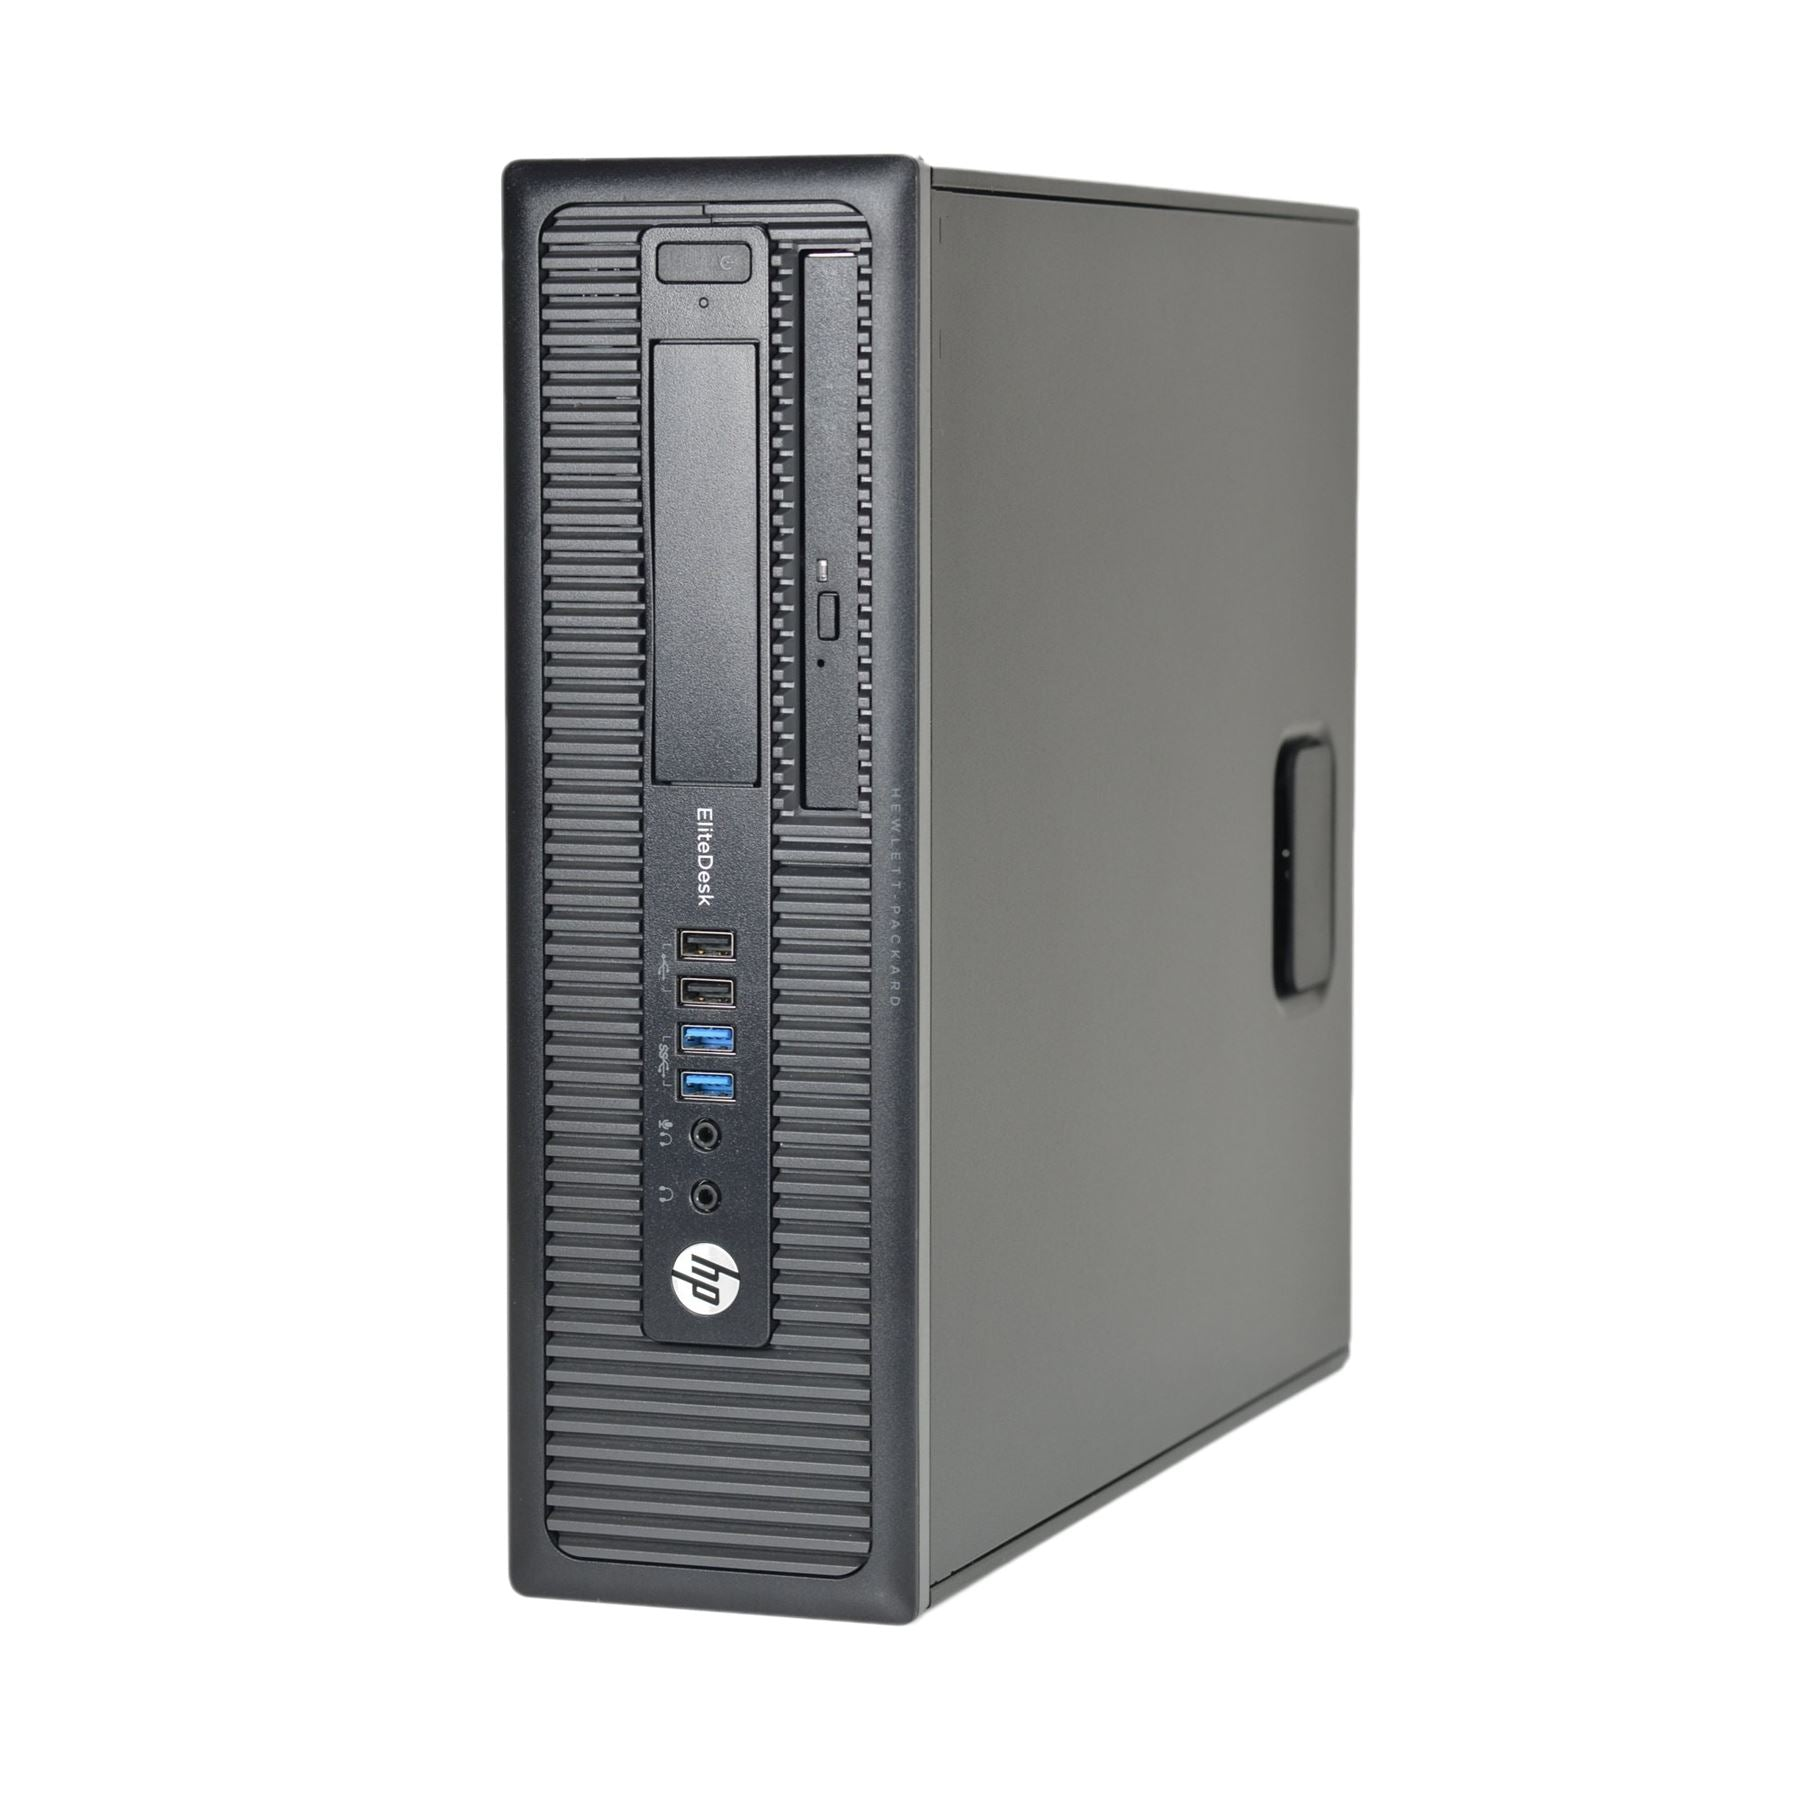 Gaming PC HP EliteDesk 800 G1 i5 4th Gen. GT710 8GB RAM 128GB SSD